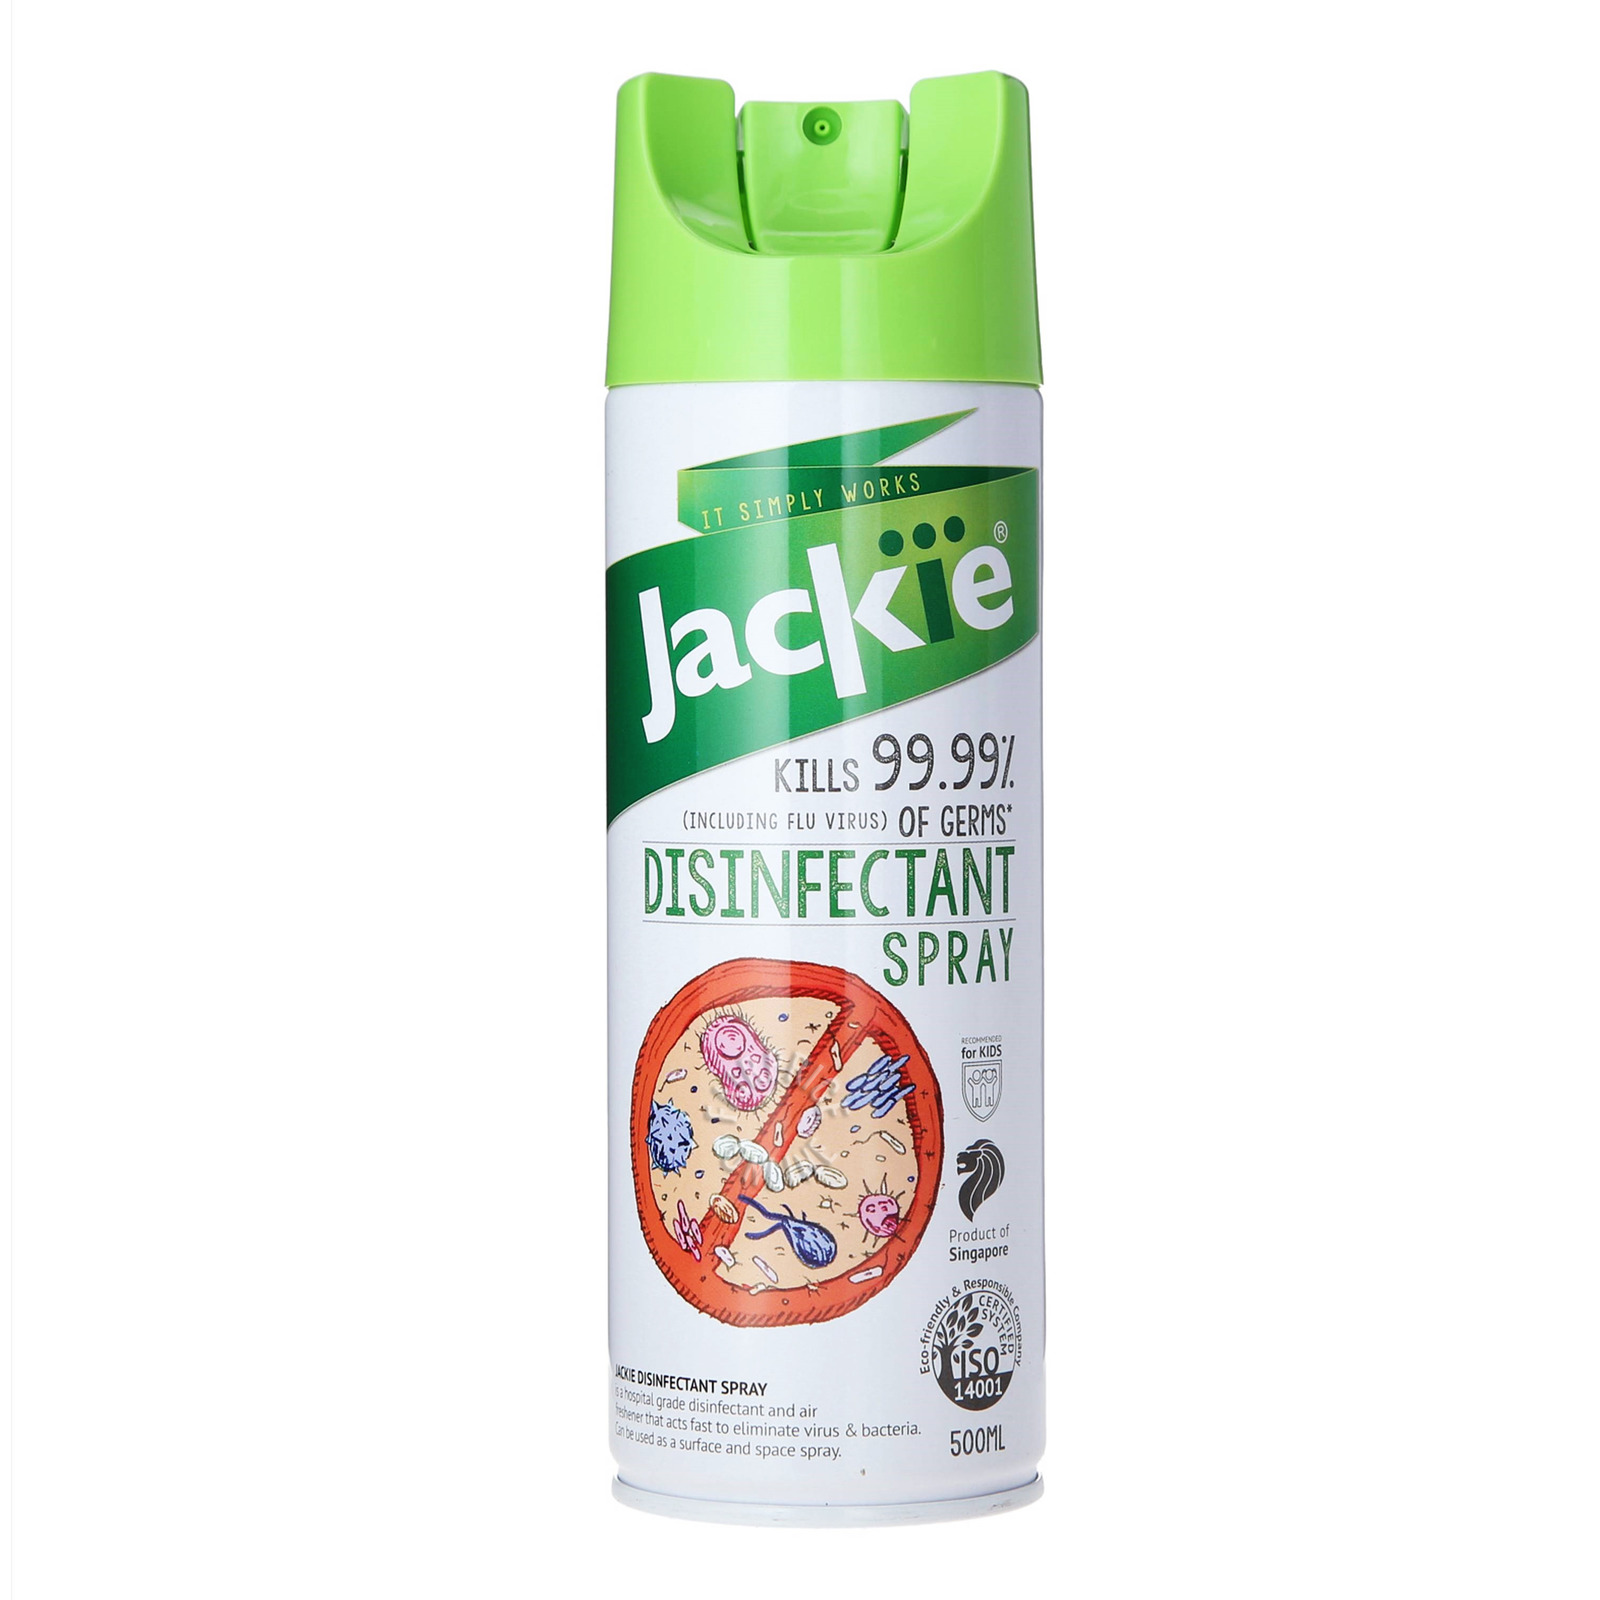 Jackie Disinfectant Spray